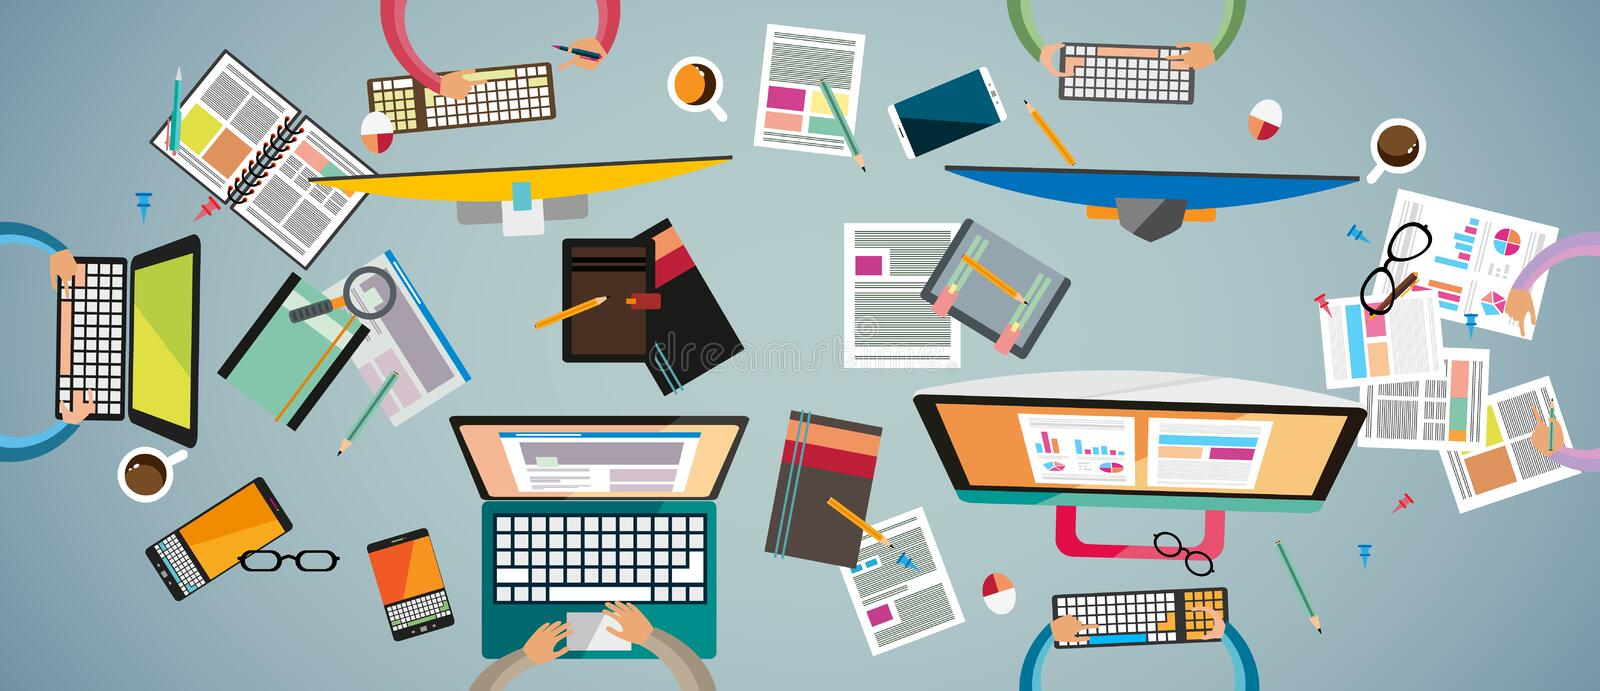 Ideal Workspace for teamwork and brainsotrming with Flat style. vector illustration